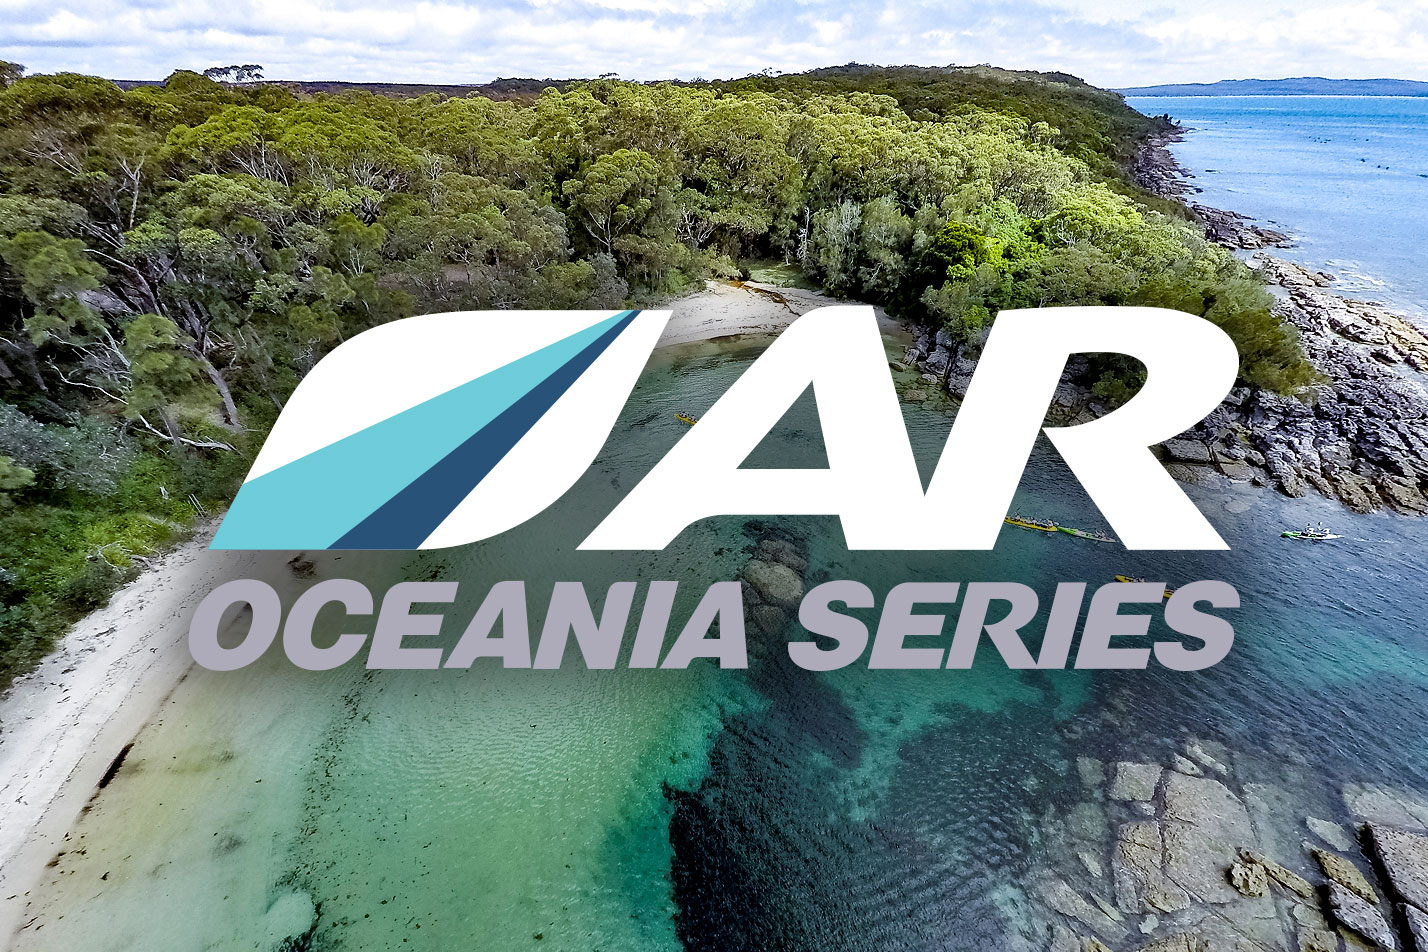 SERIES QUALIFIER - Terra Nova 24 is a qualifier race for the ARWS Oceania Series. Teams of 4 compete for an ARWS Regional Ranking and a free entry to the Oceanic Regional Championship.